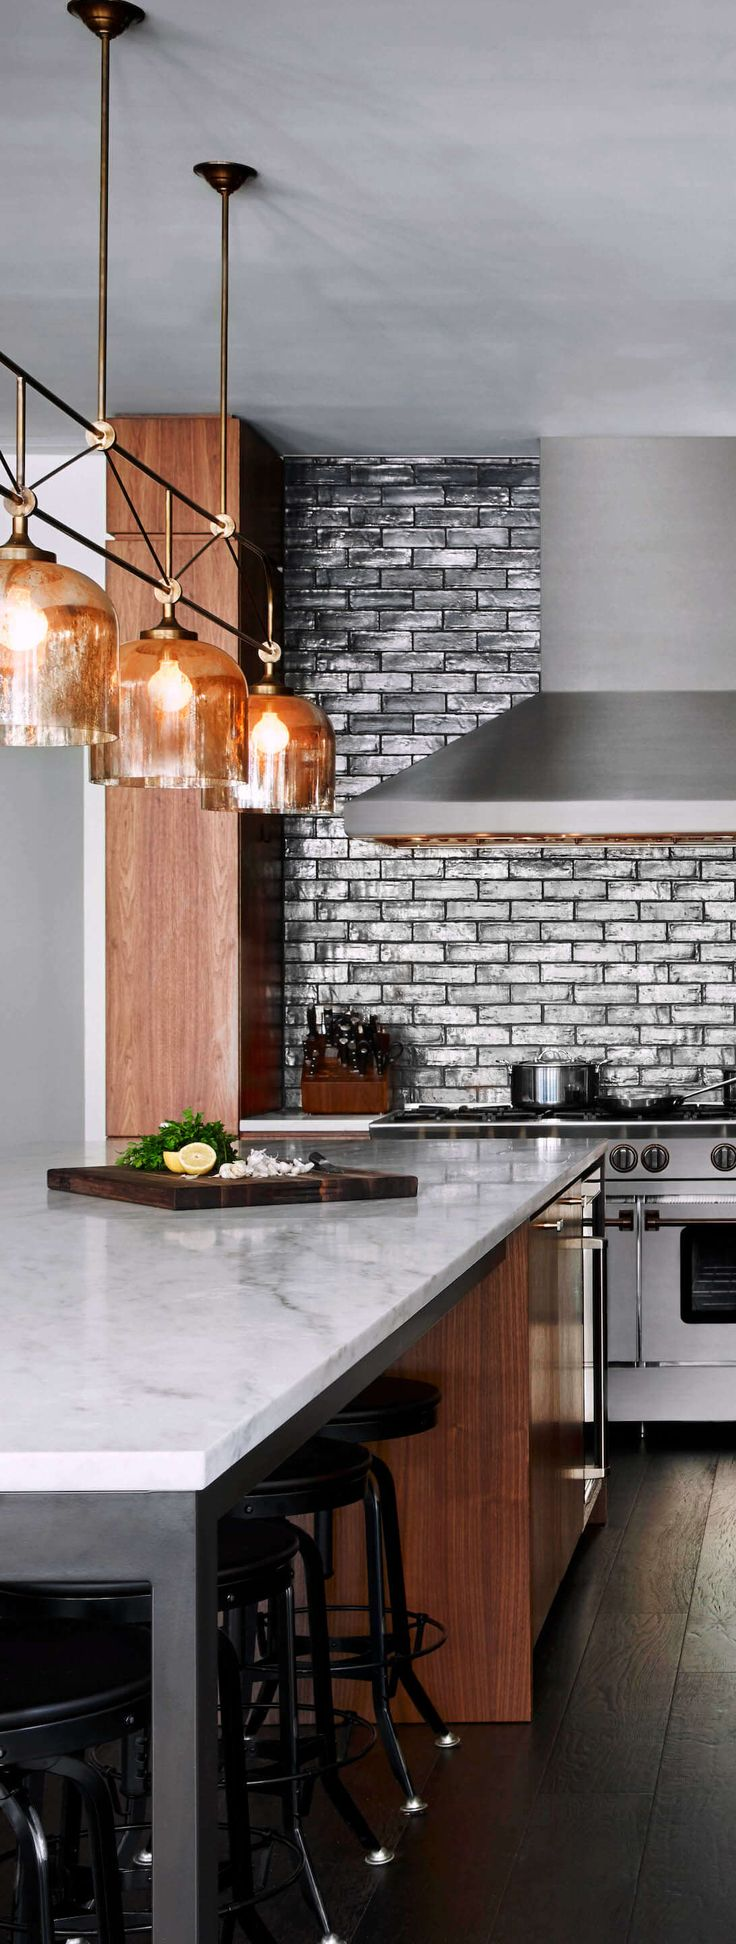 Backsplash Bling: A great mix of materials in this contemporary kitchen with strong architectural lines. Range: BlueStar